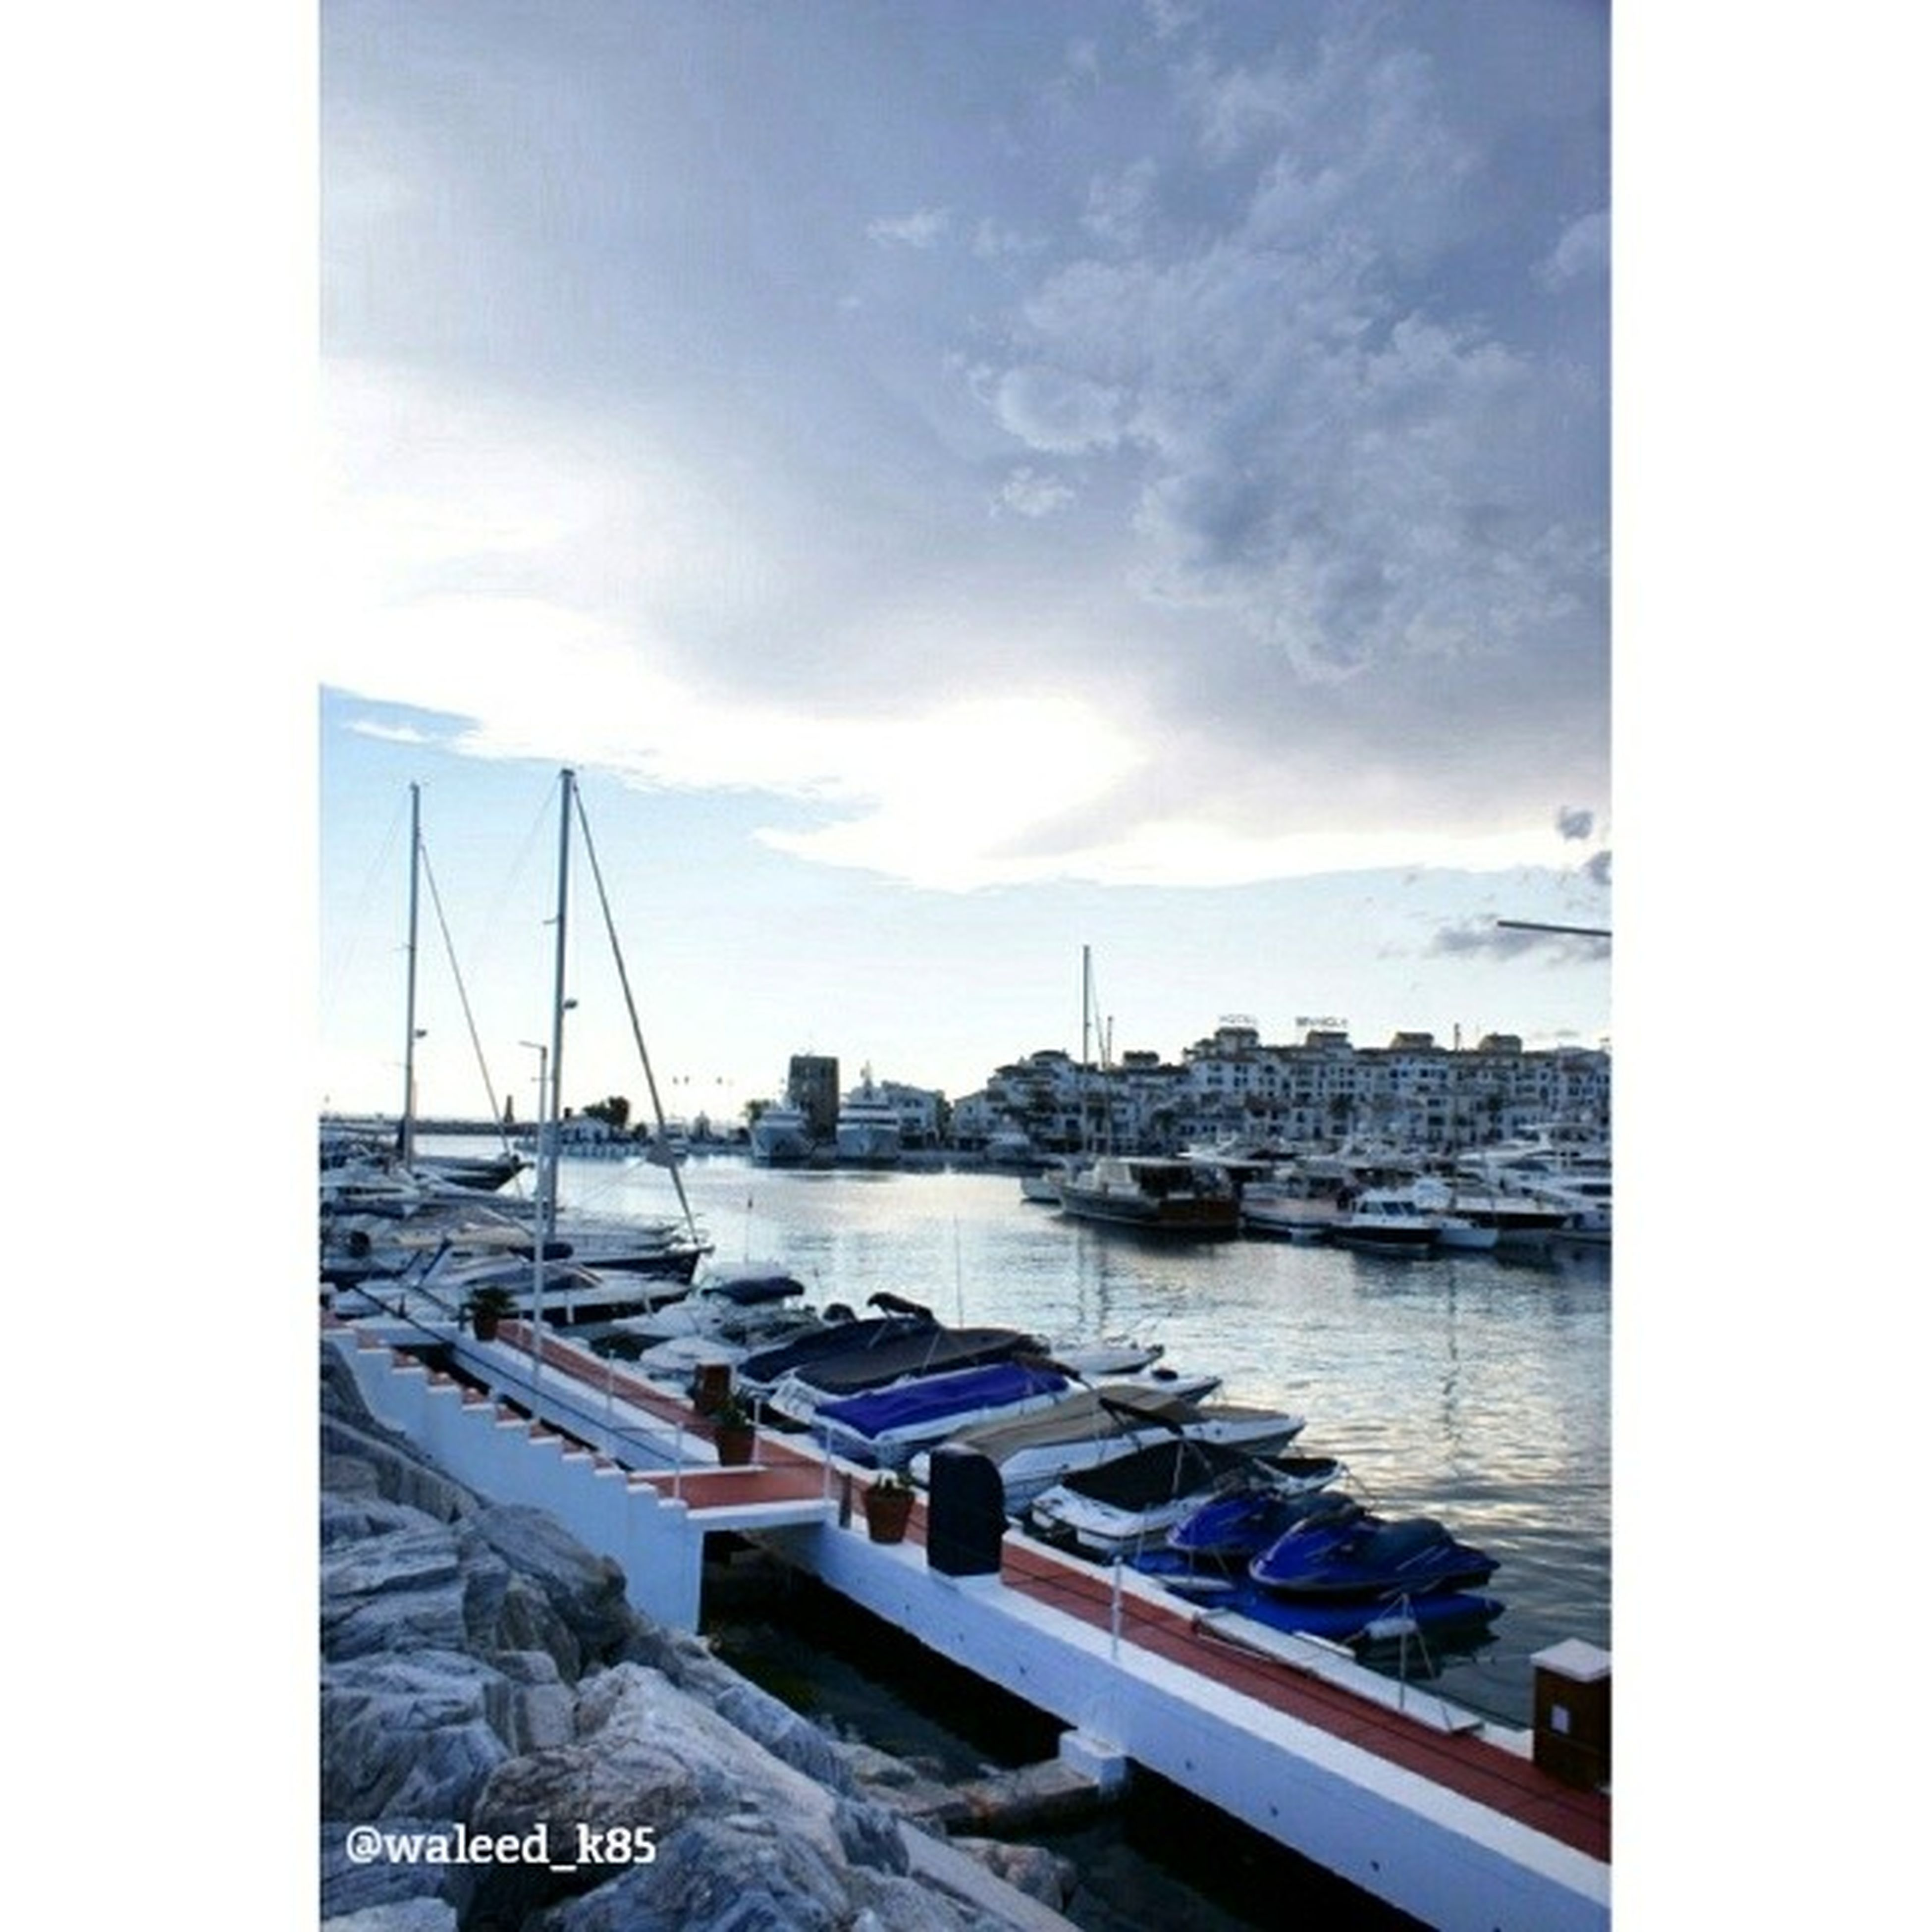 nautical vessel, transportation, mode of transport, boat, moored, water, harbor, sky, mast, sea, sailboat, transfer print, cloud - sky, travel, auto post production filter, yacht, cloud, river, waterfront, marina